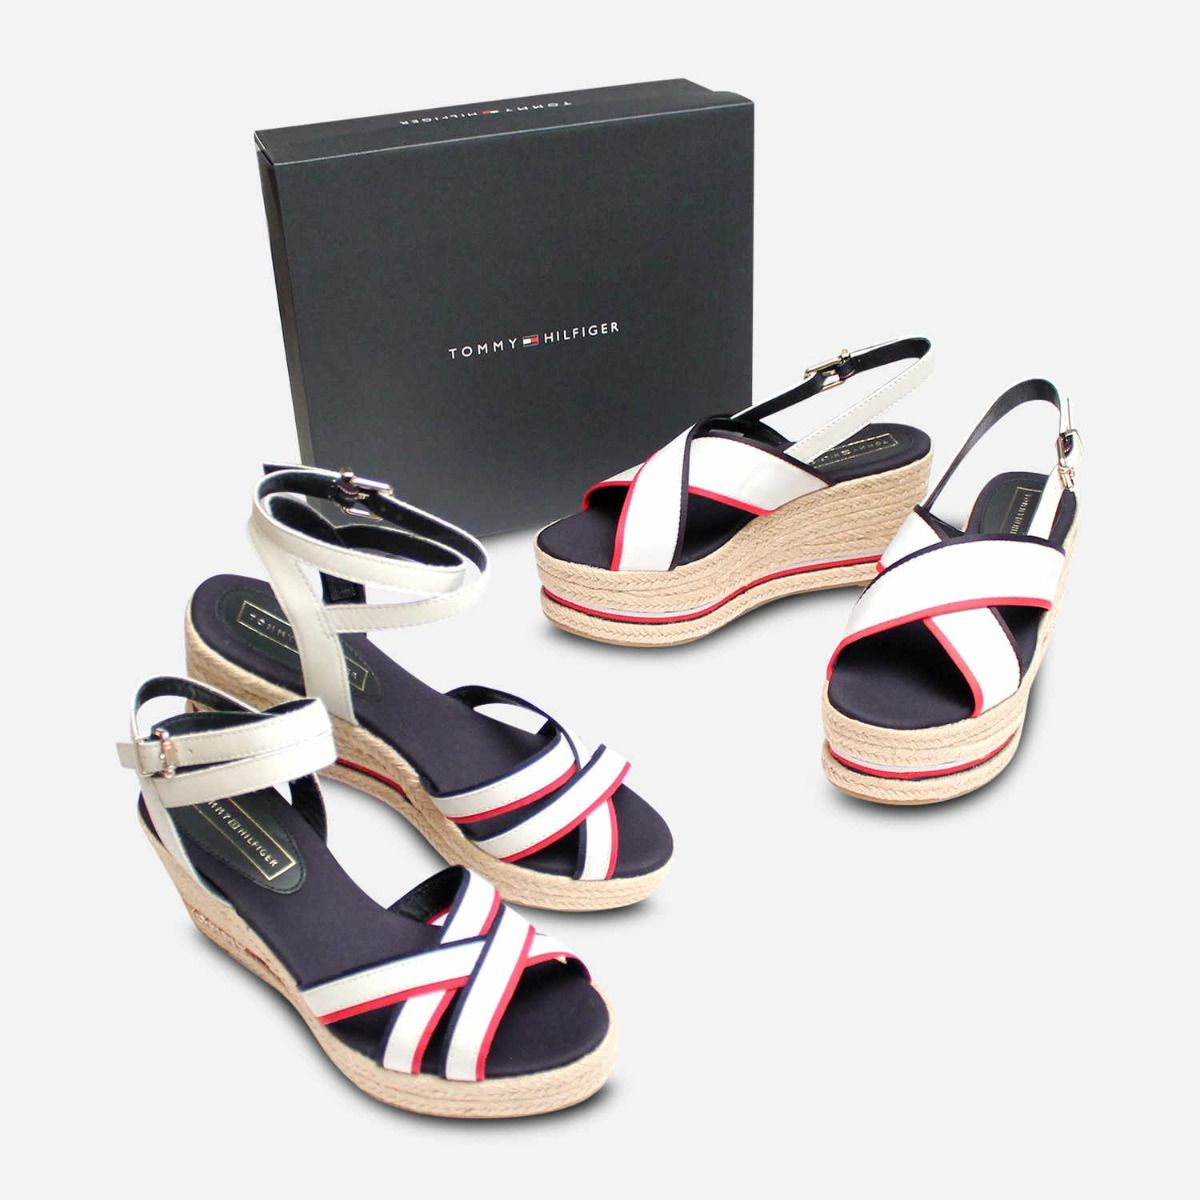 9550a1af9e6b Tommy Hilfiger Designer Flatform Sandals in Red White   Blue